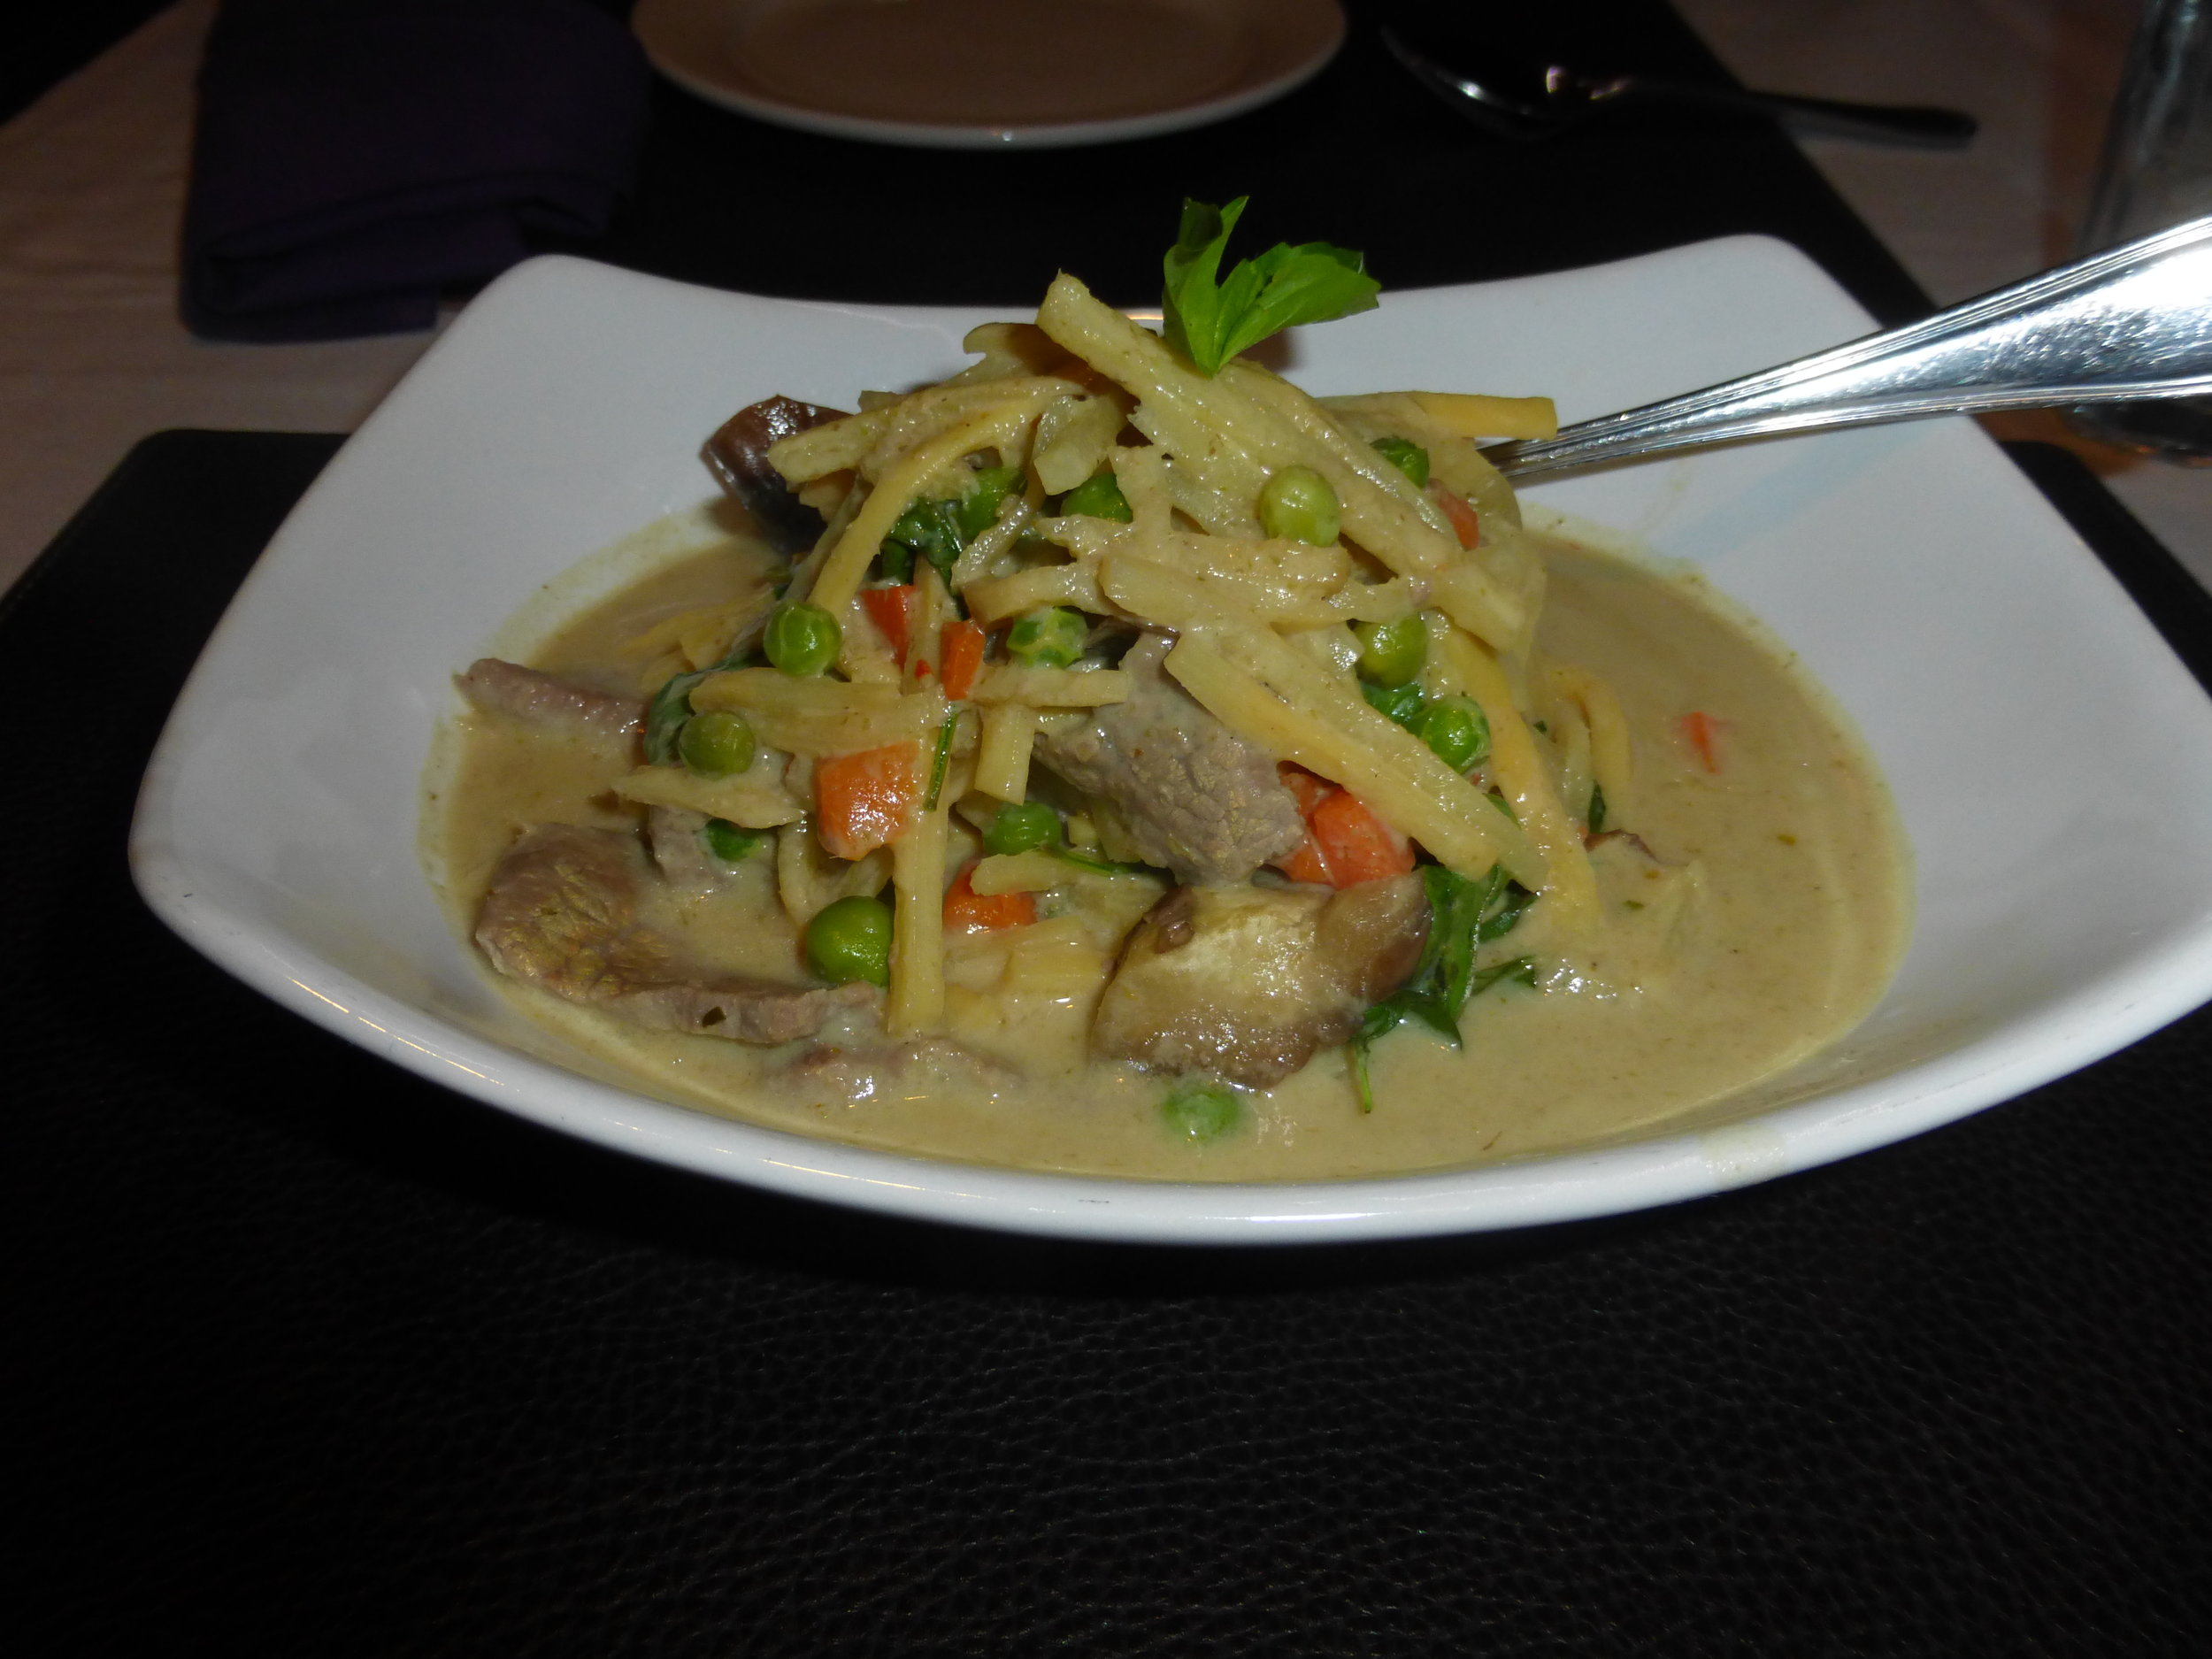 Our friend ordered  Thai Green Curry  with beef, coconut milk, bamboo, peas, carrots, eggplant, and sweet basil.